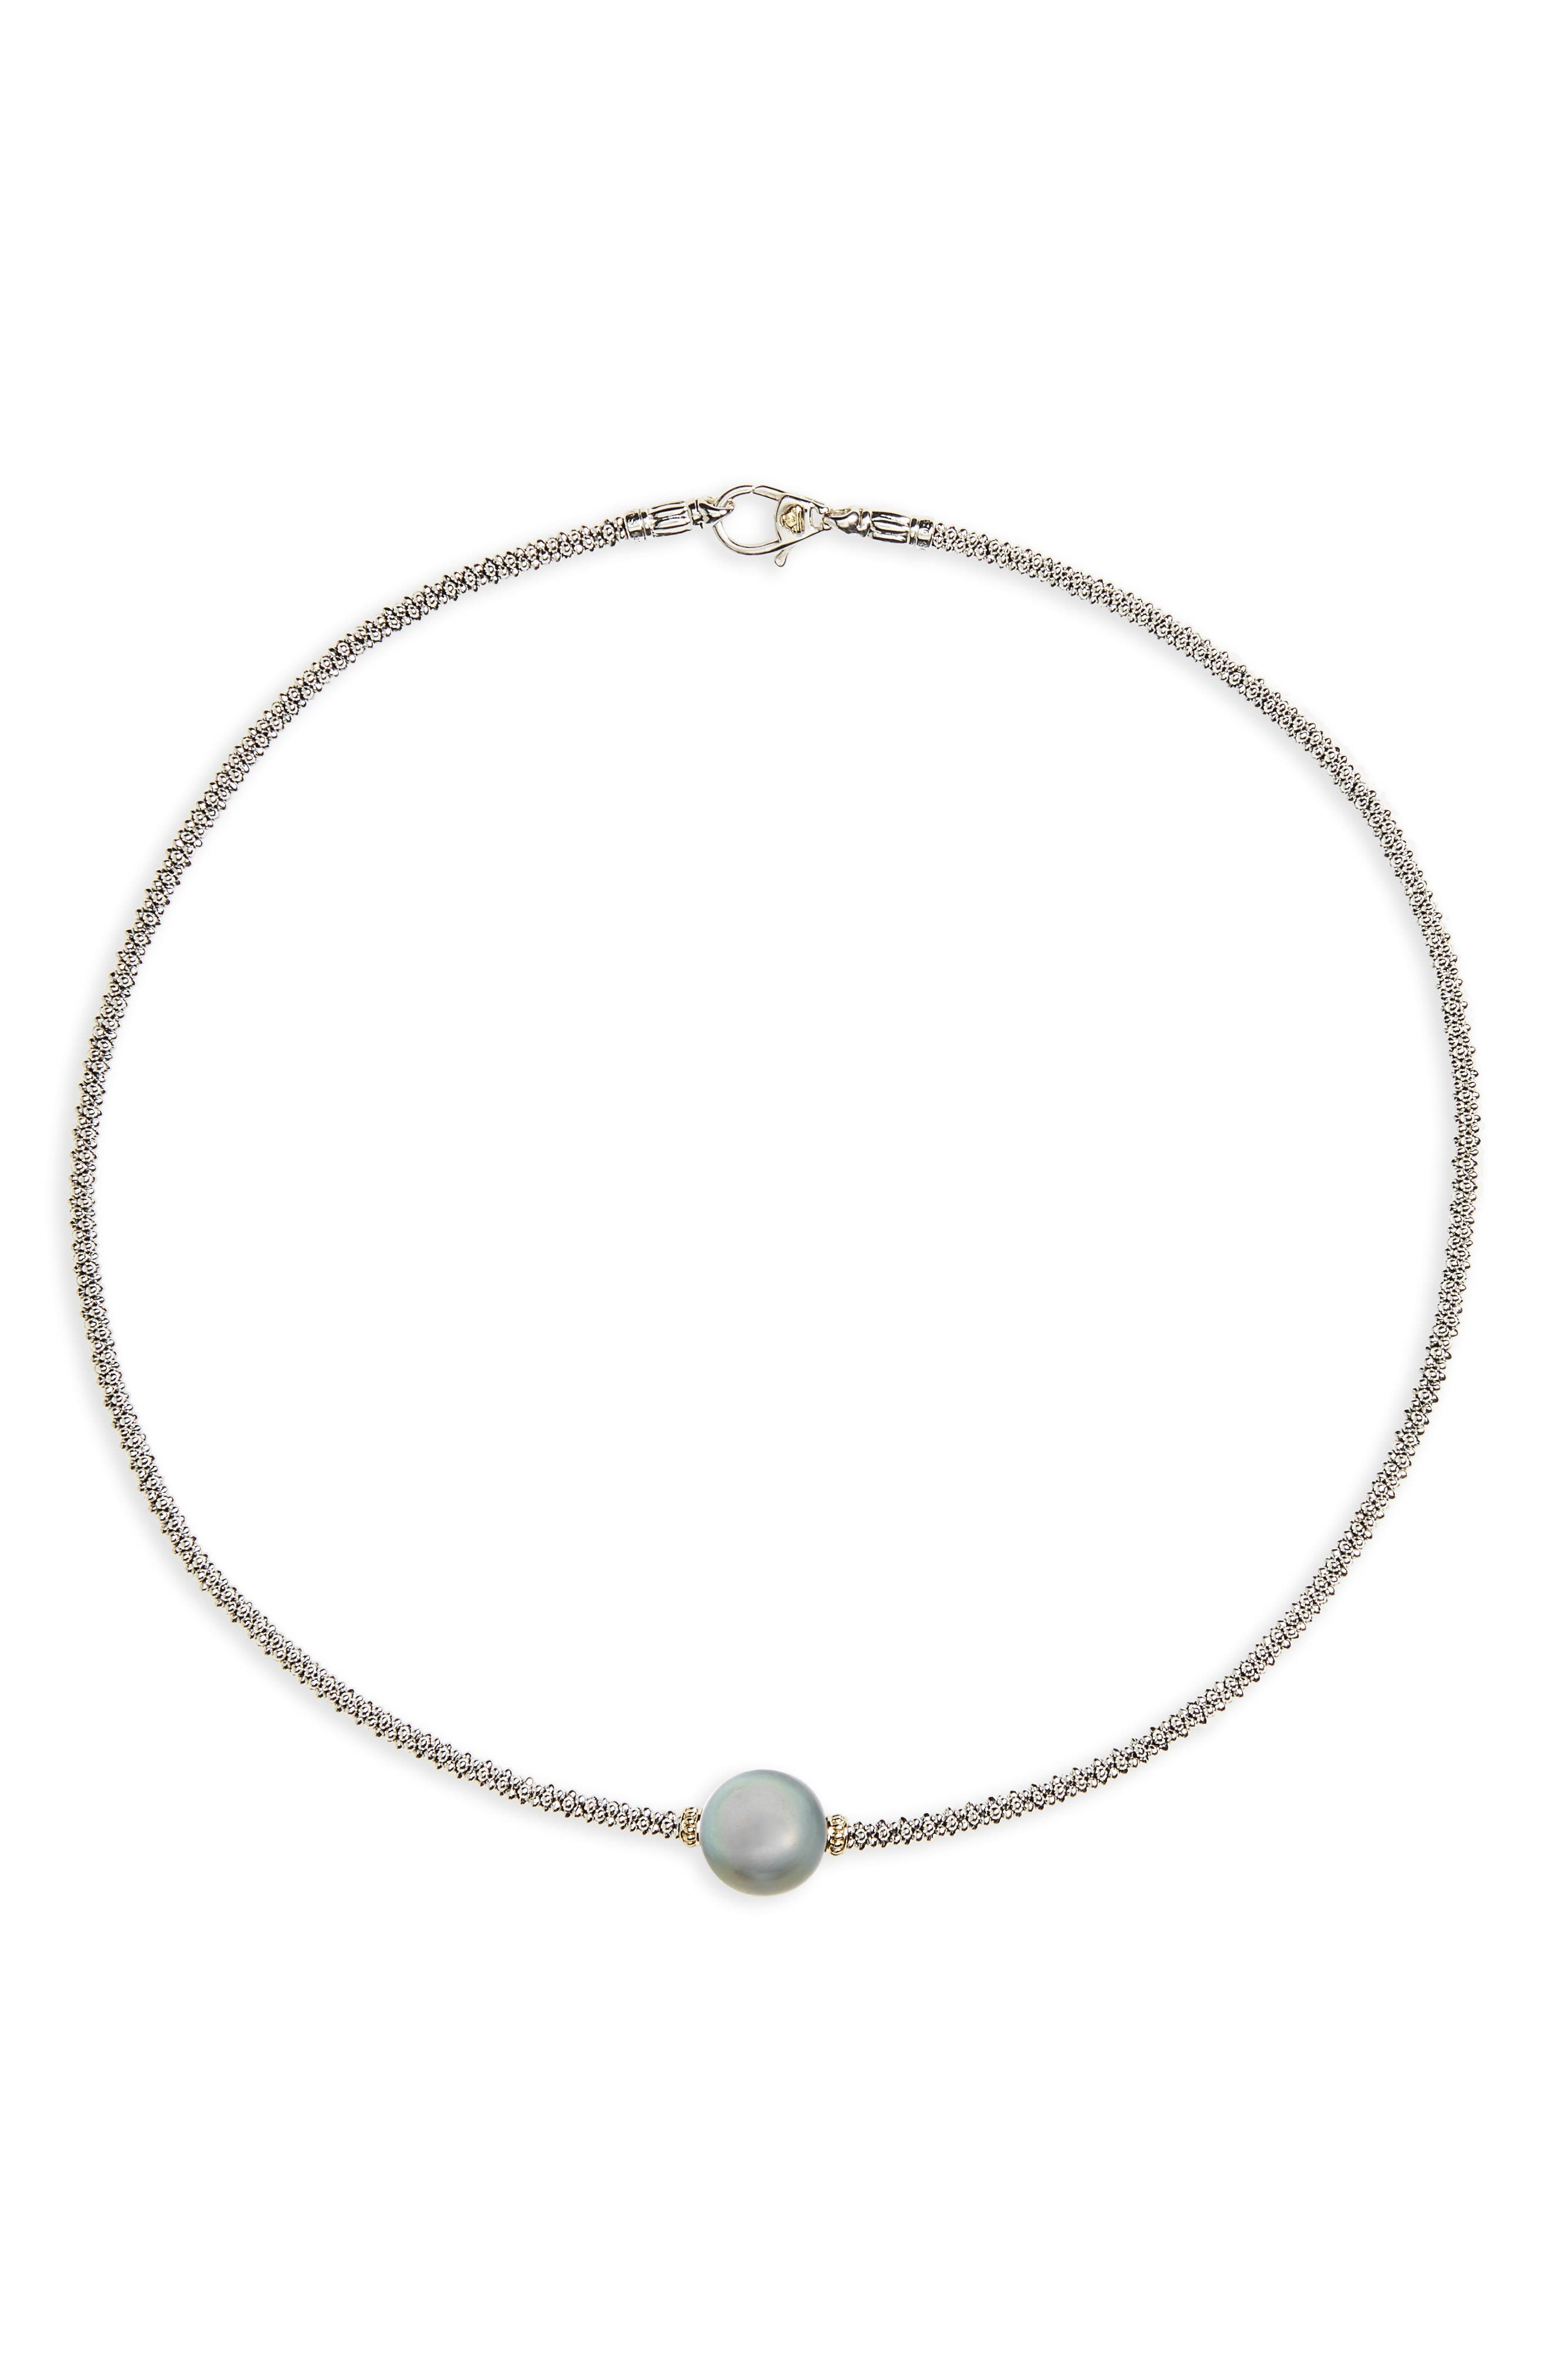 Alternate Image 1 Selected - LAGOS Luna Pearl Collar Necklace